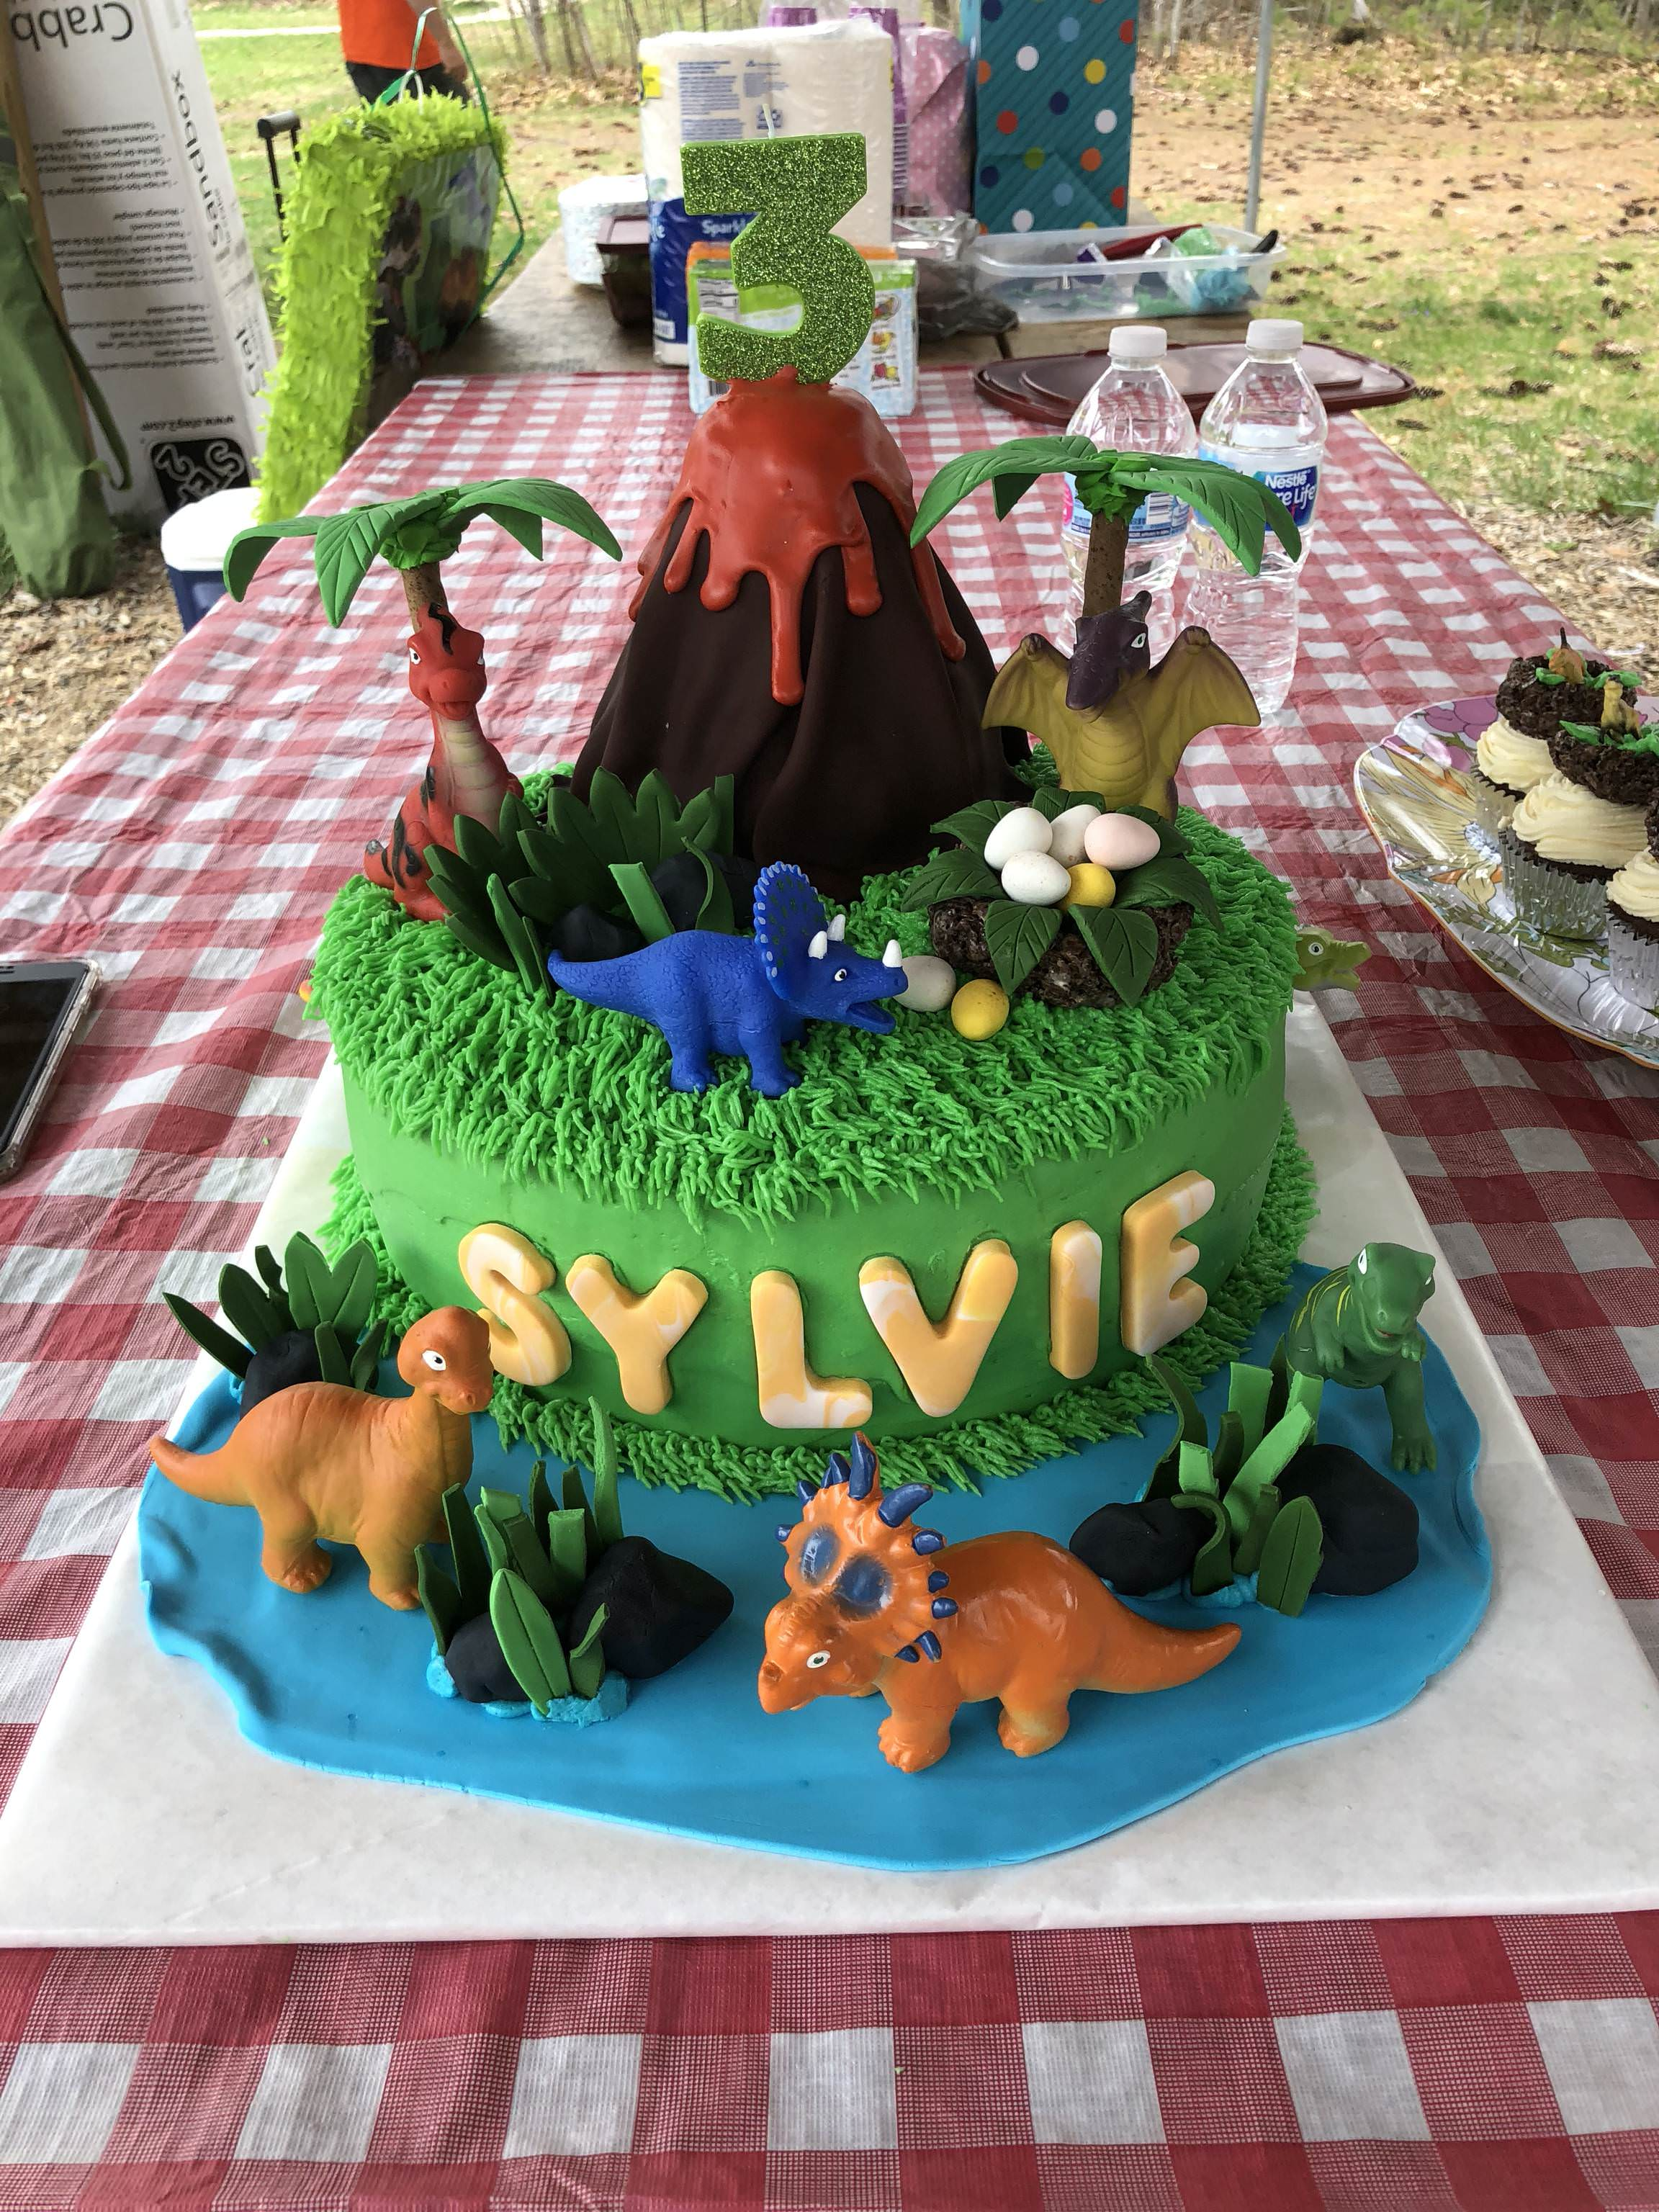 My daughter kept asking for a chocolate dinosaur cake - latsyrcami - bit.ly2IrdBhY